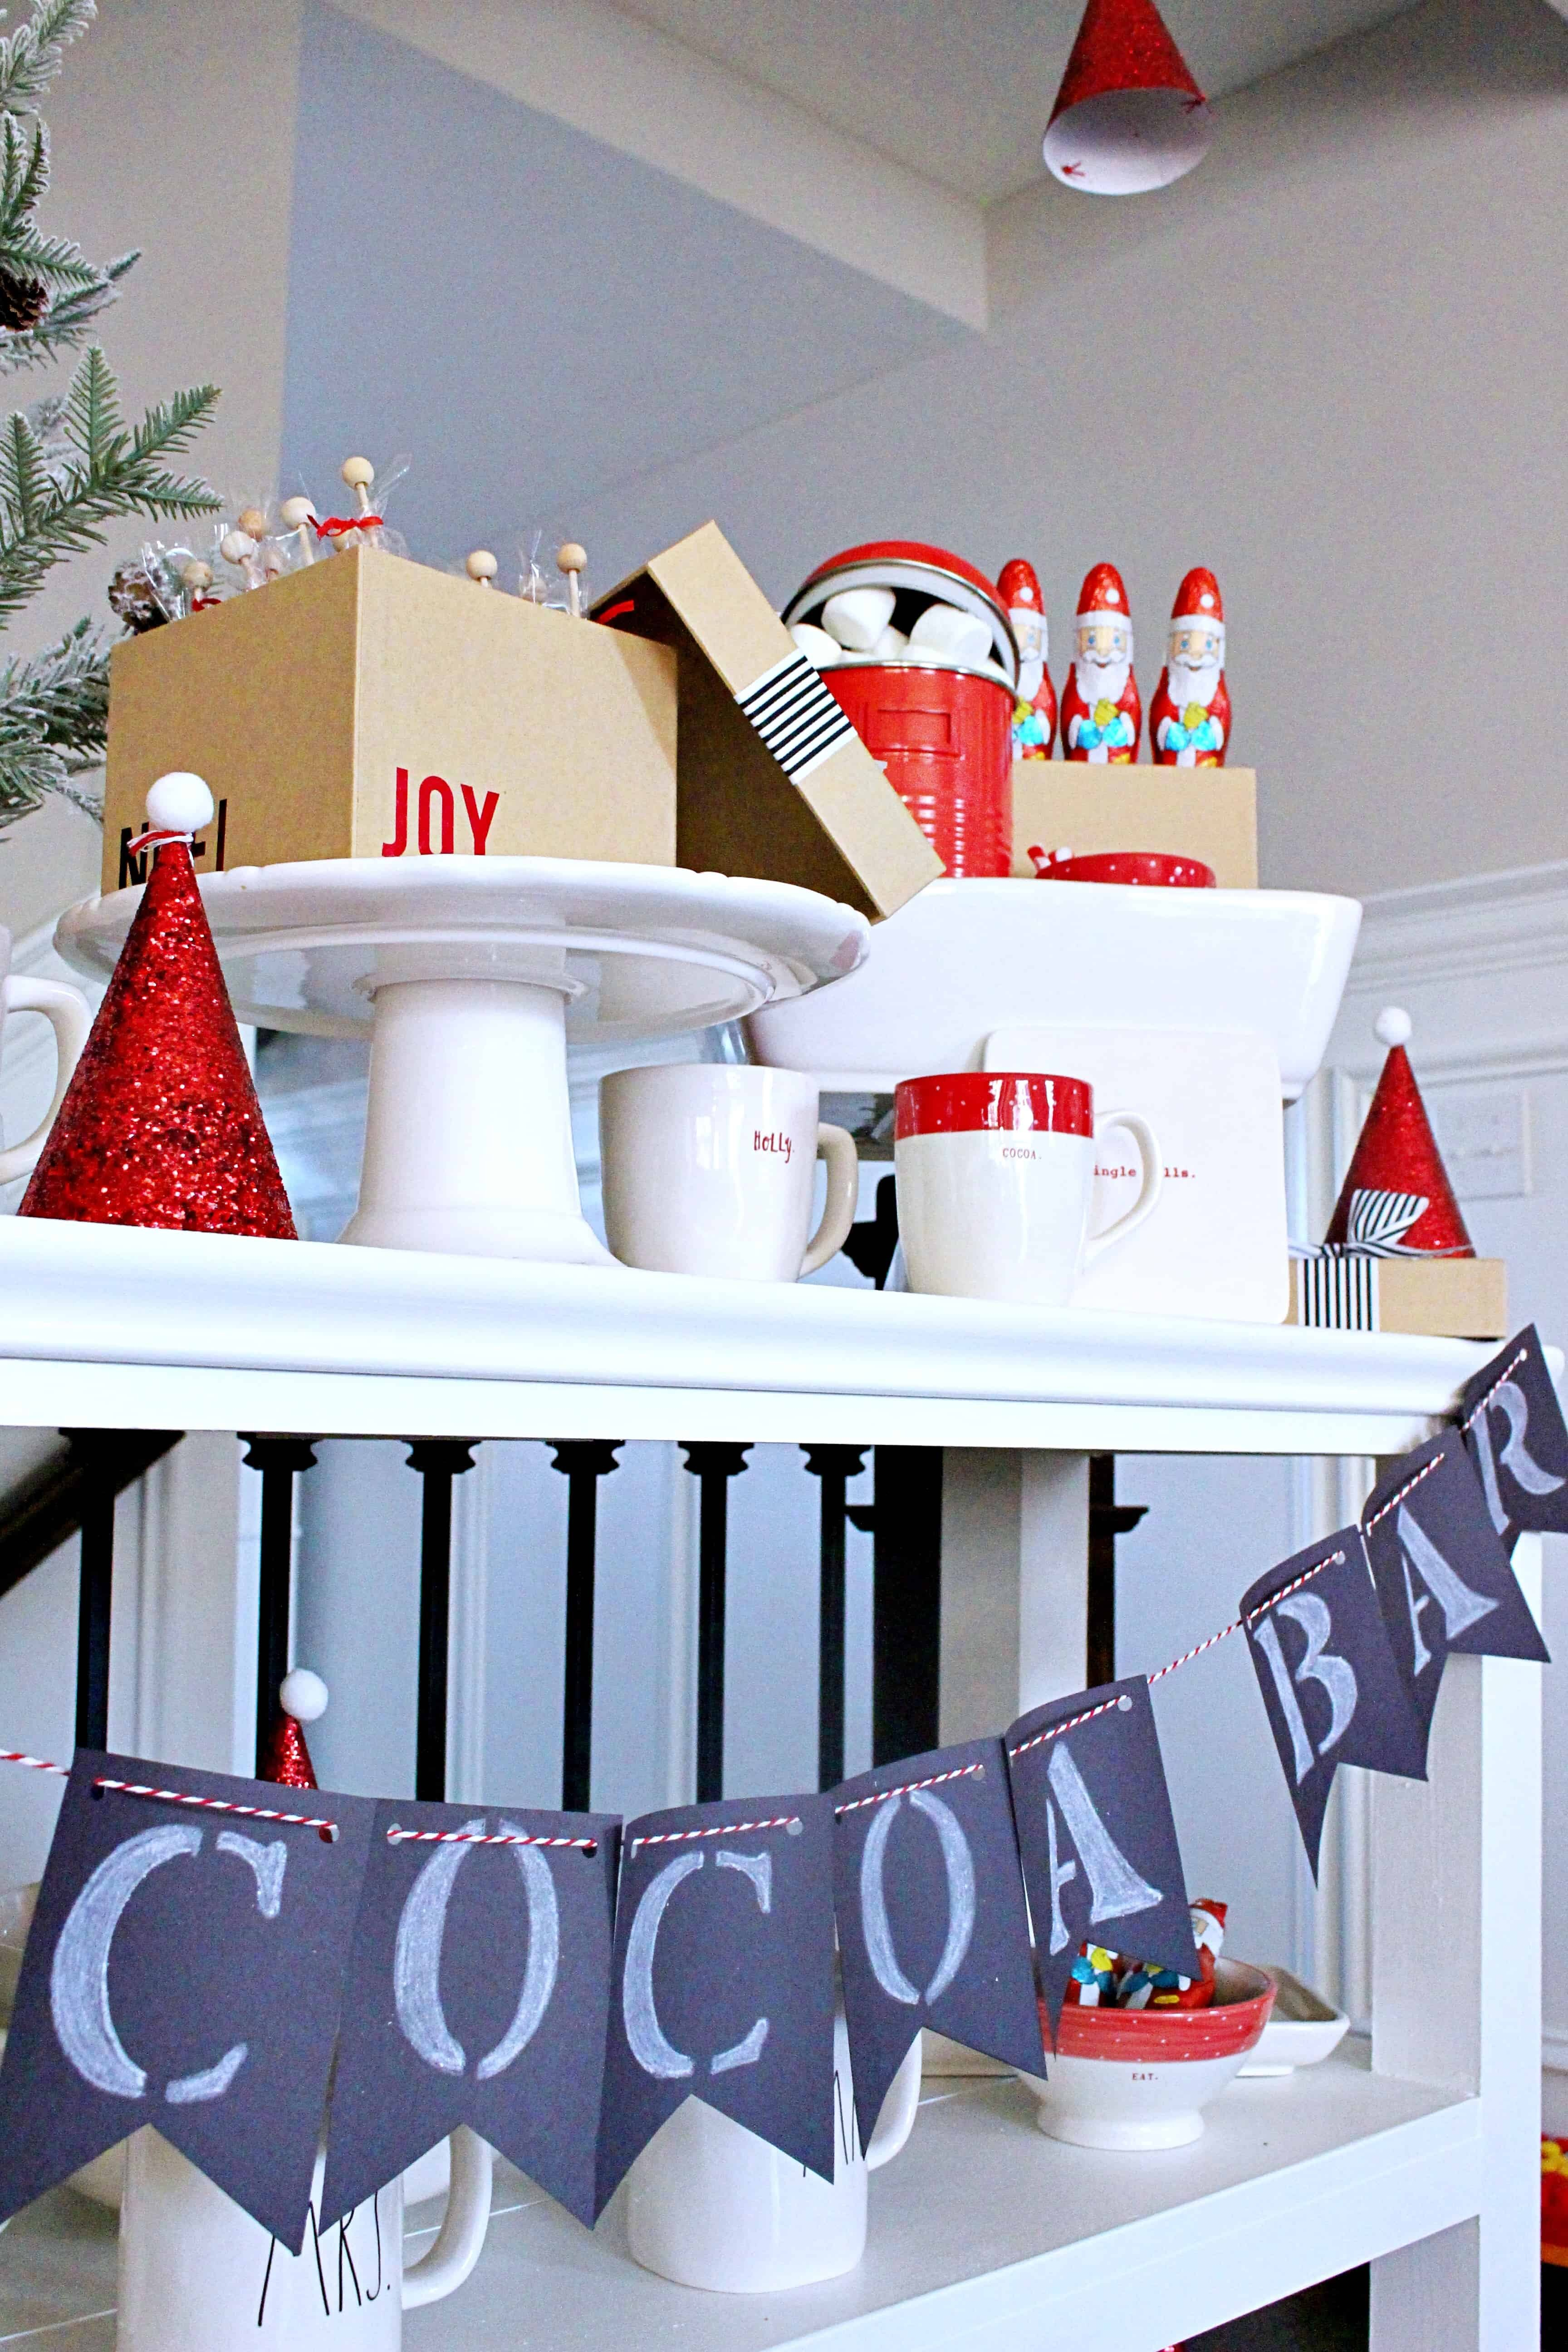 Creating A Stunning Hot Cocoa Bar To Wow Your Guests